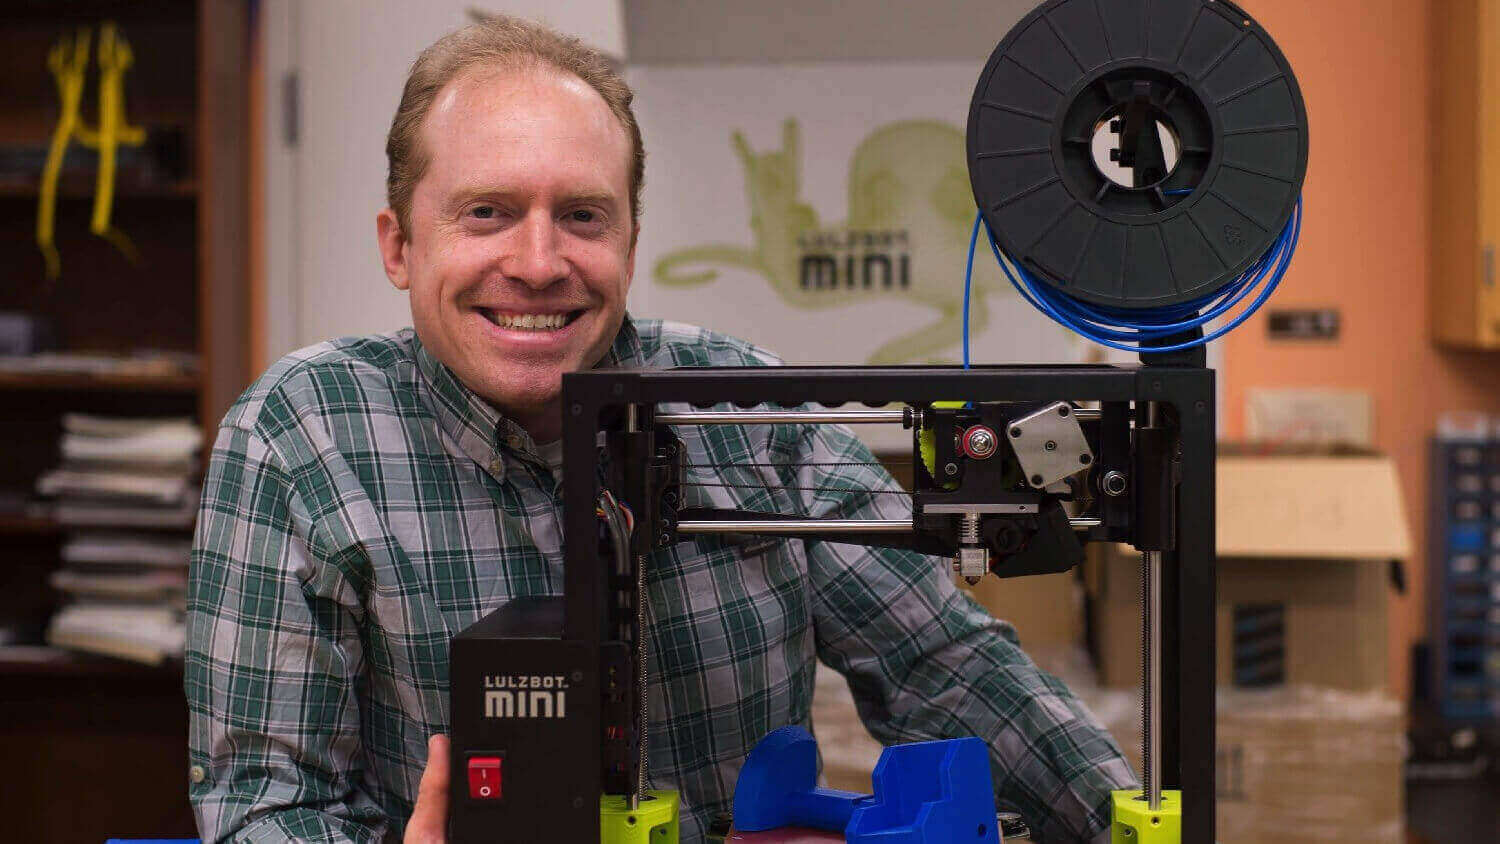 Could You Save Money by 3D Printing Household Items? | All3DP